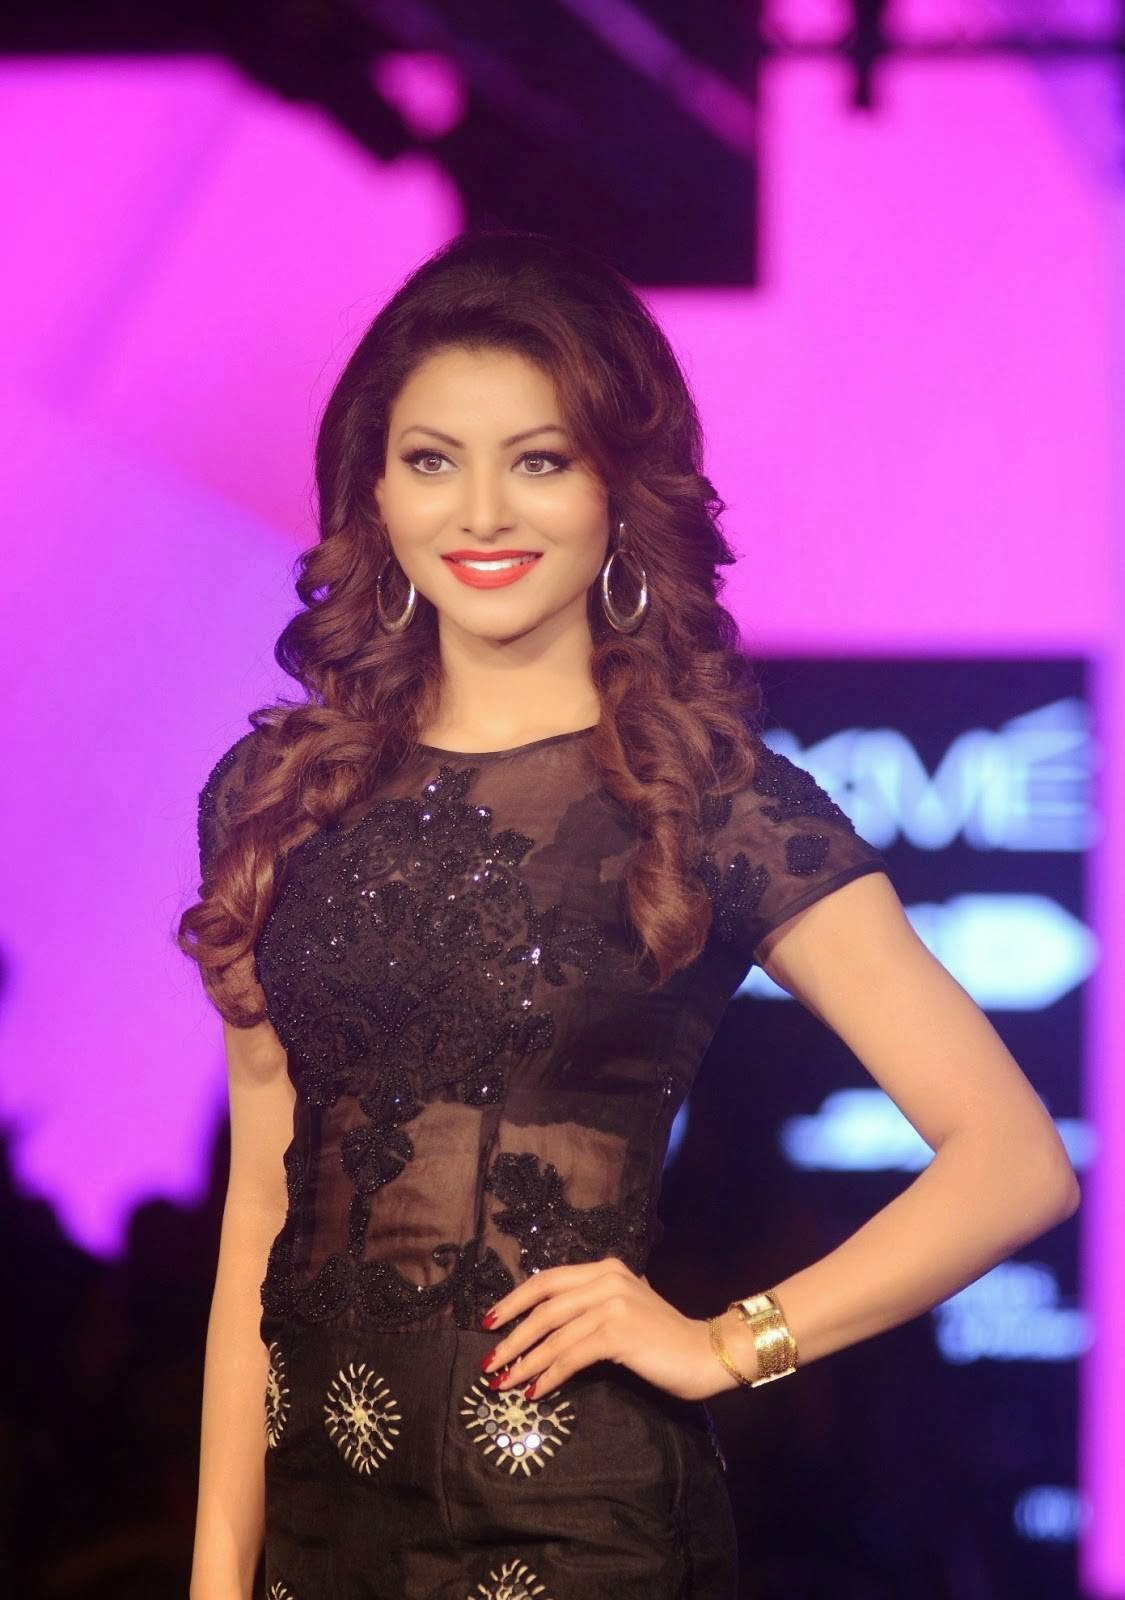 Urvashi Rautela Stills at Manish Malhotra's Lakme Fashion Week 2015